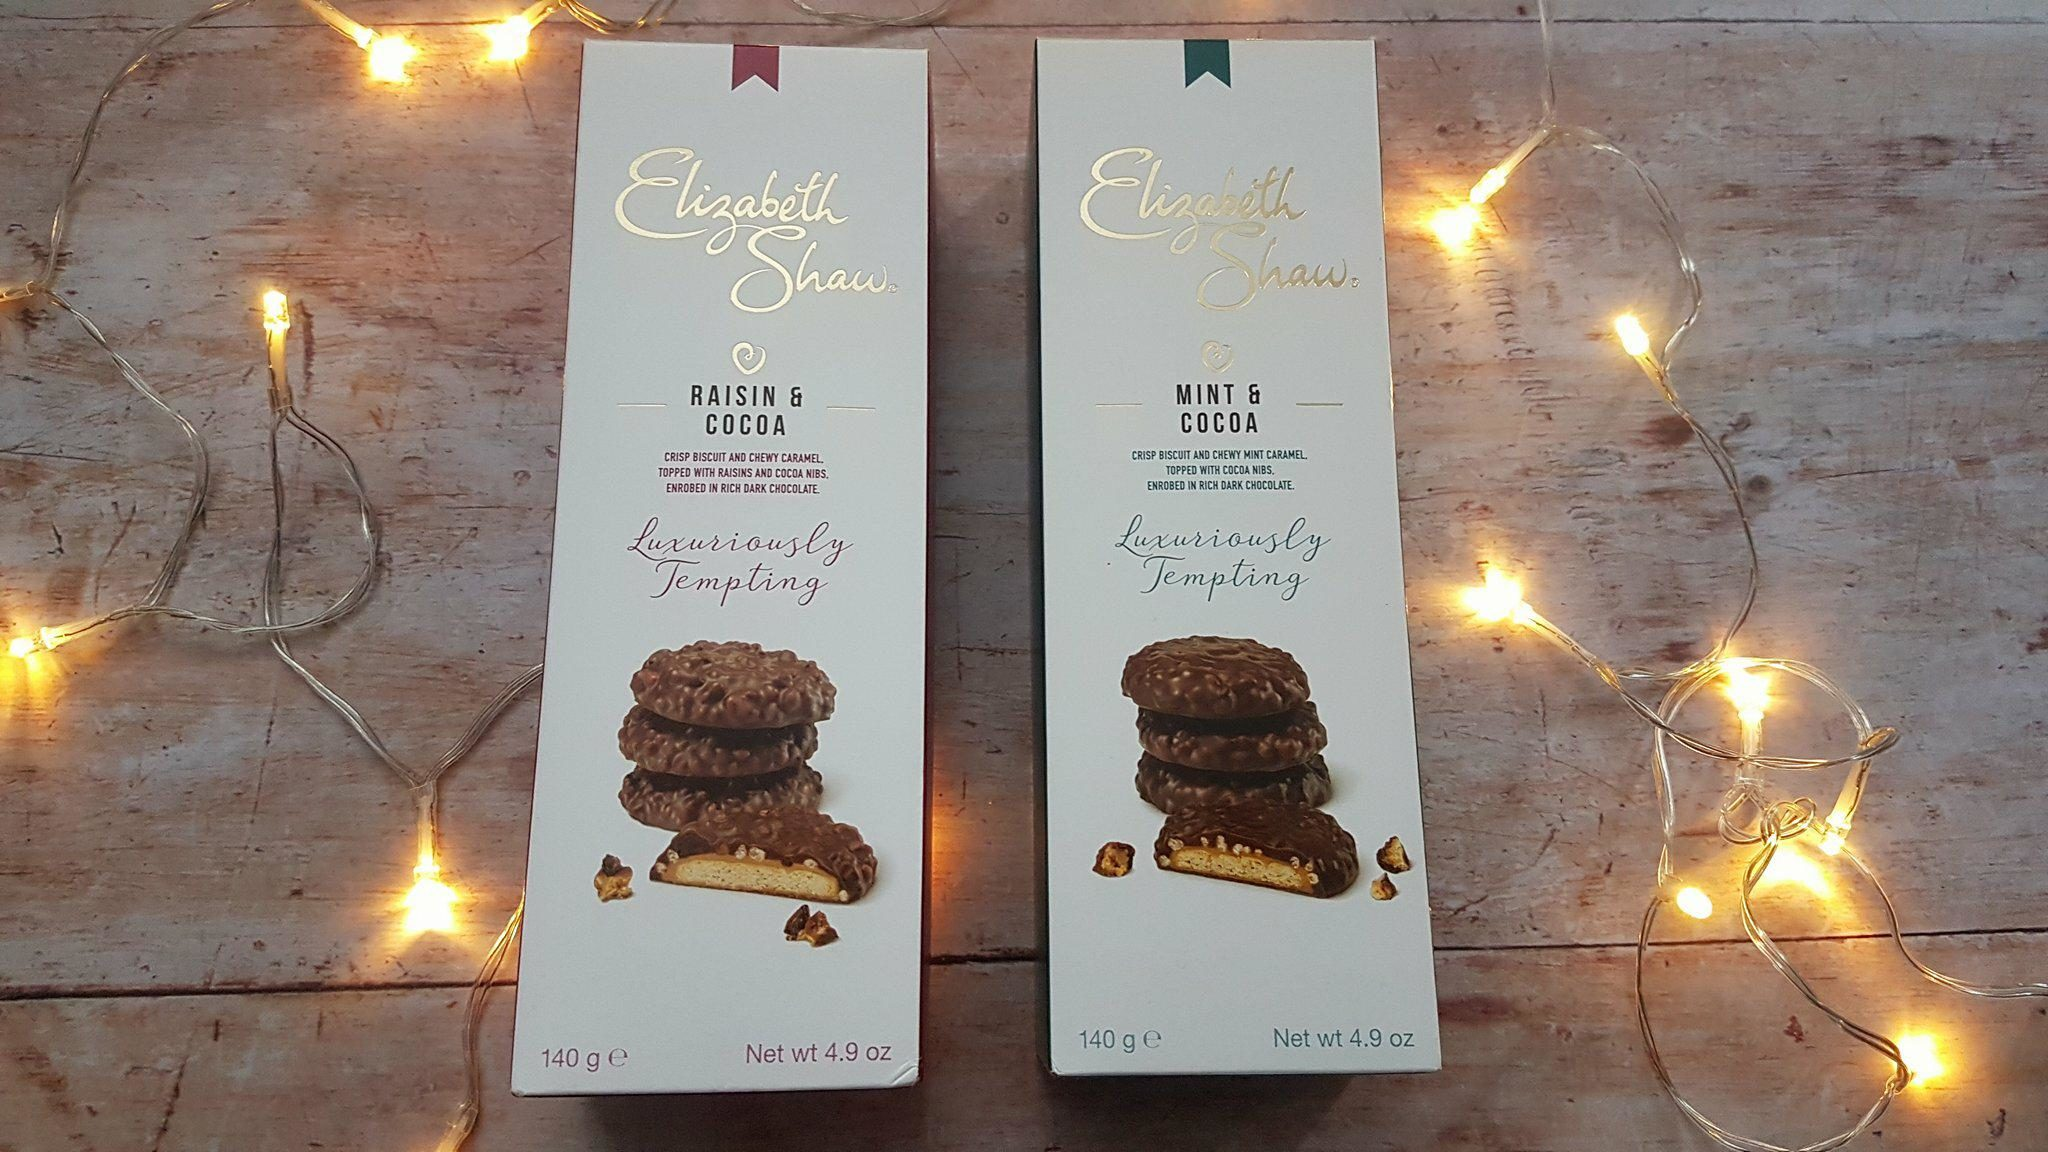 Elizabeth Shaw luxury chocolate biscuits in Raisin & Cocoa and Mint & Cocoa